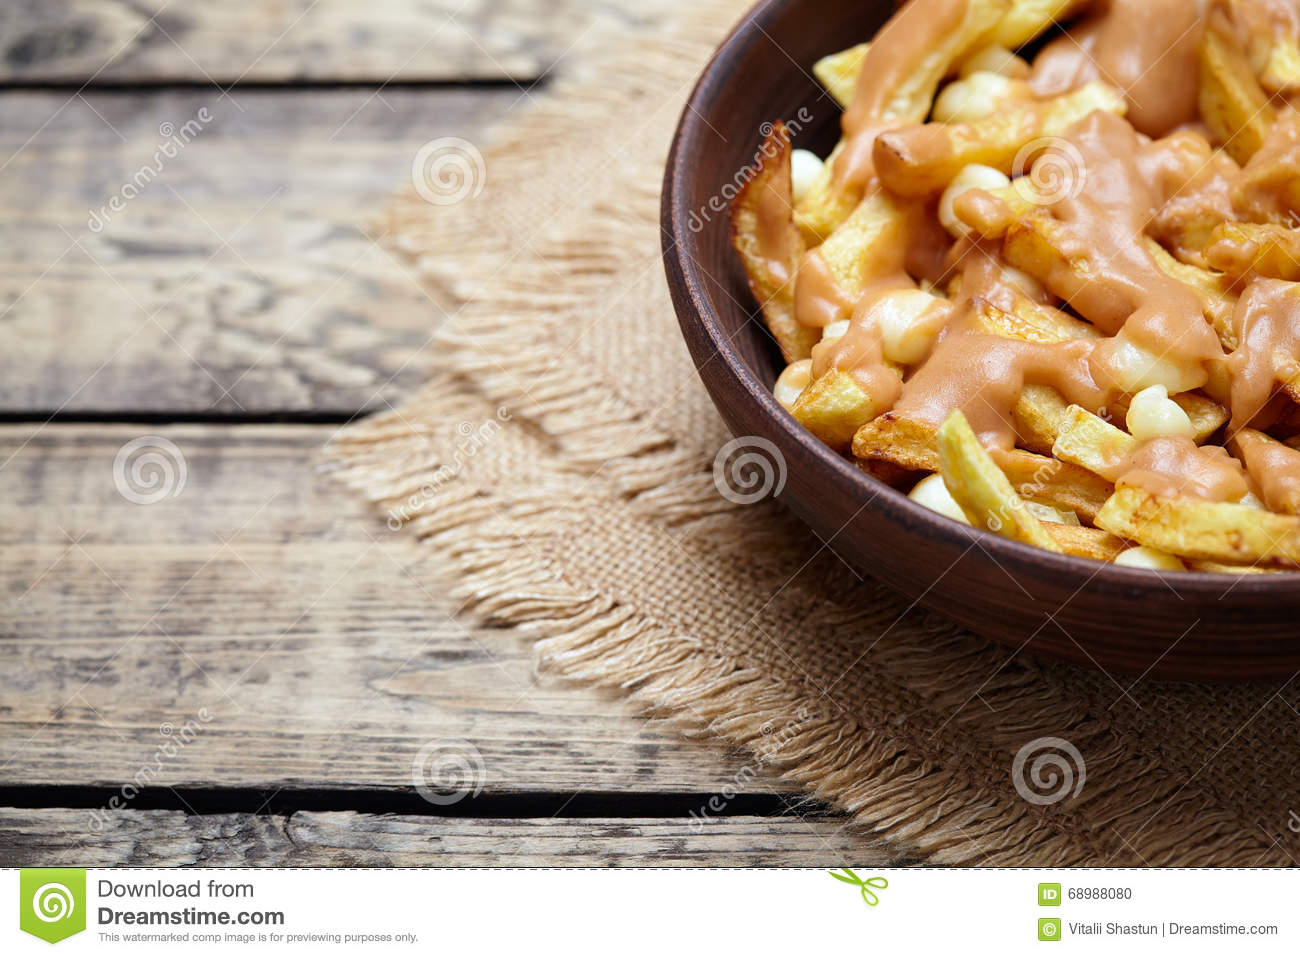 Poutine Canadian homemade traditional fast food meal with fries